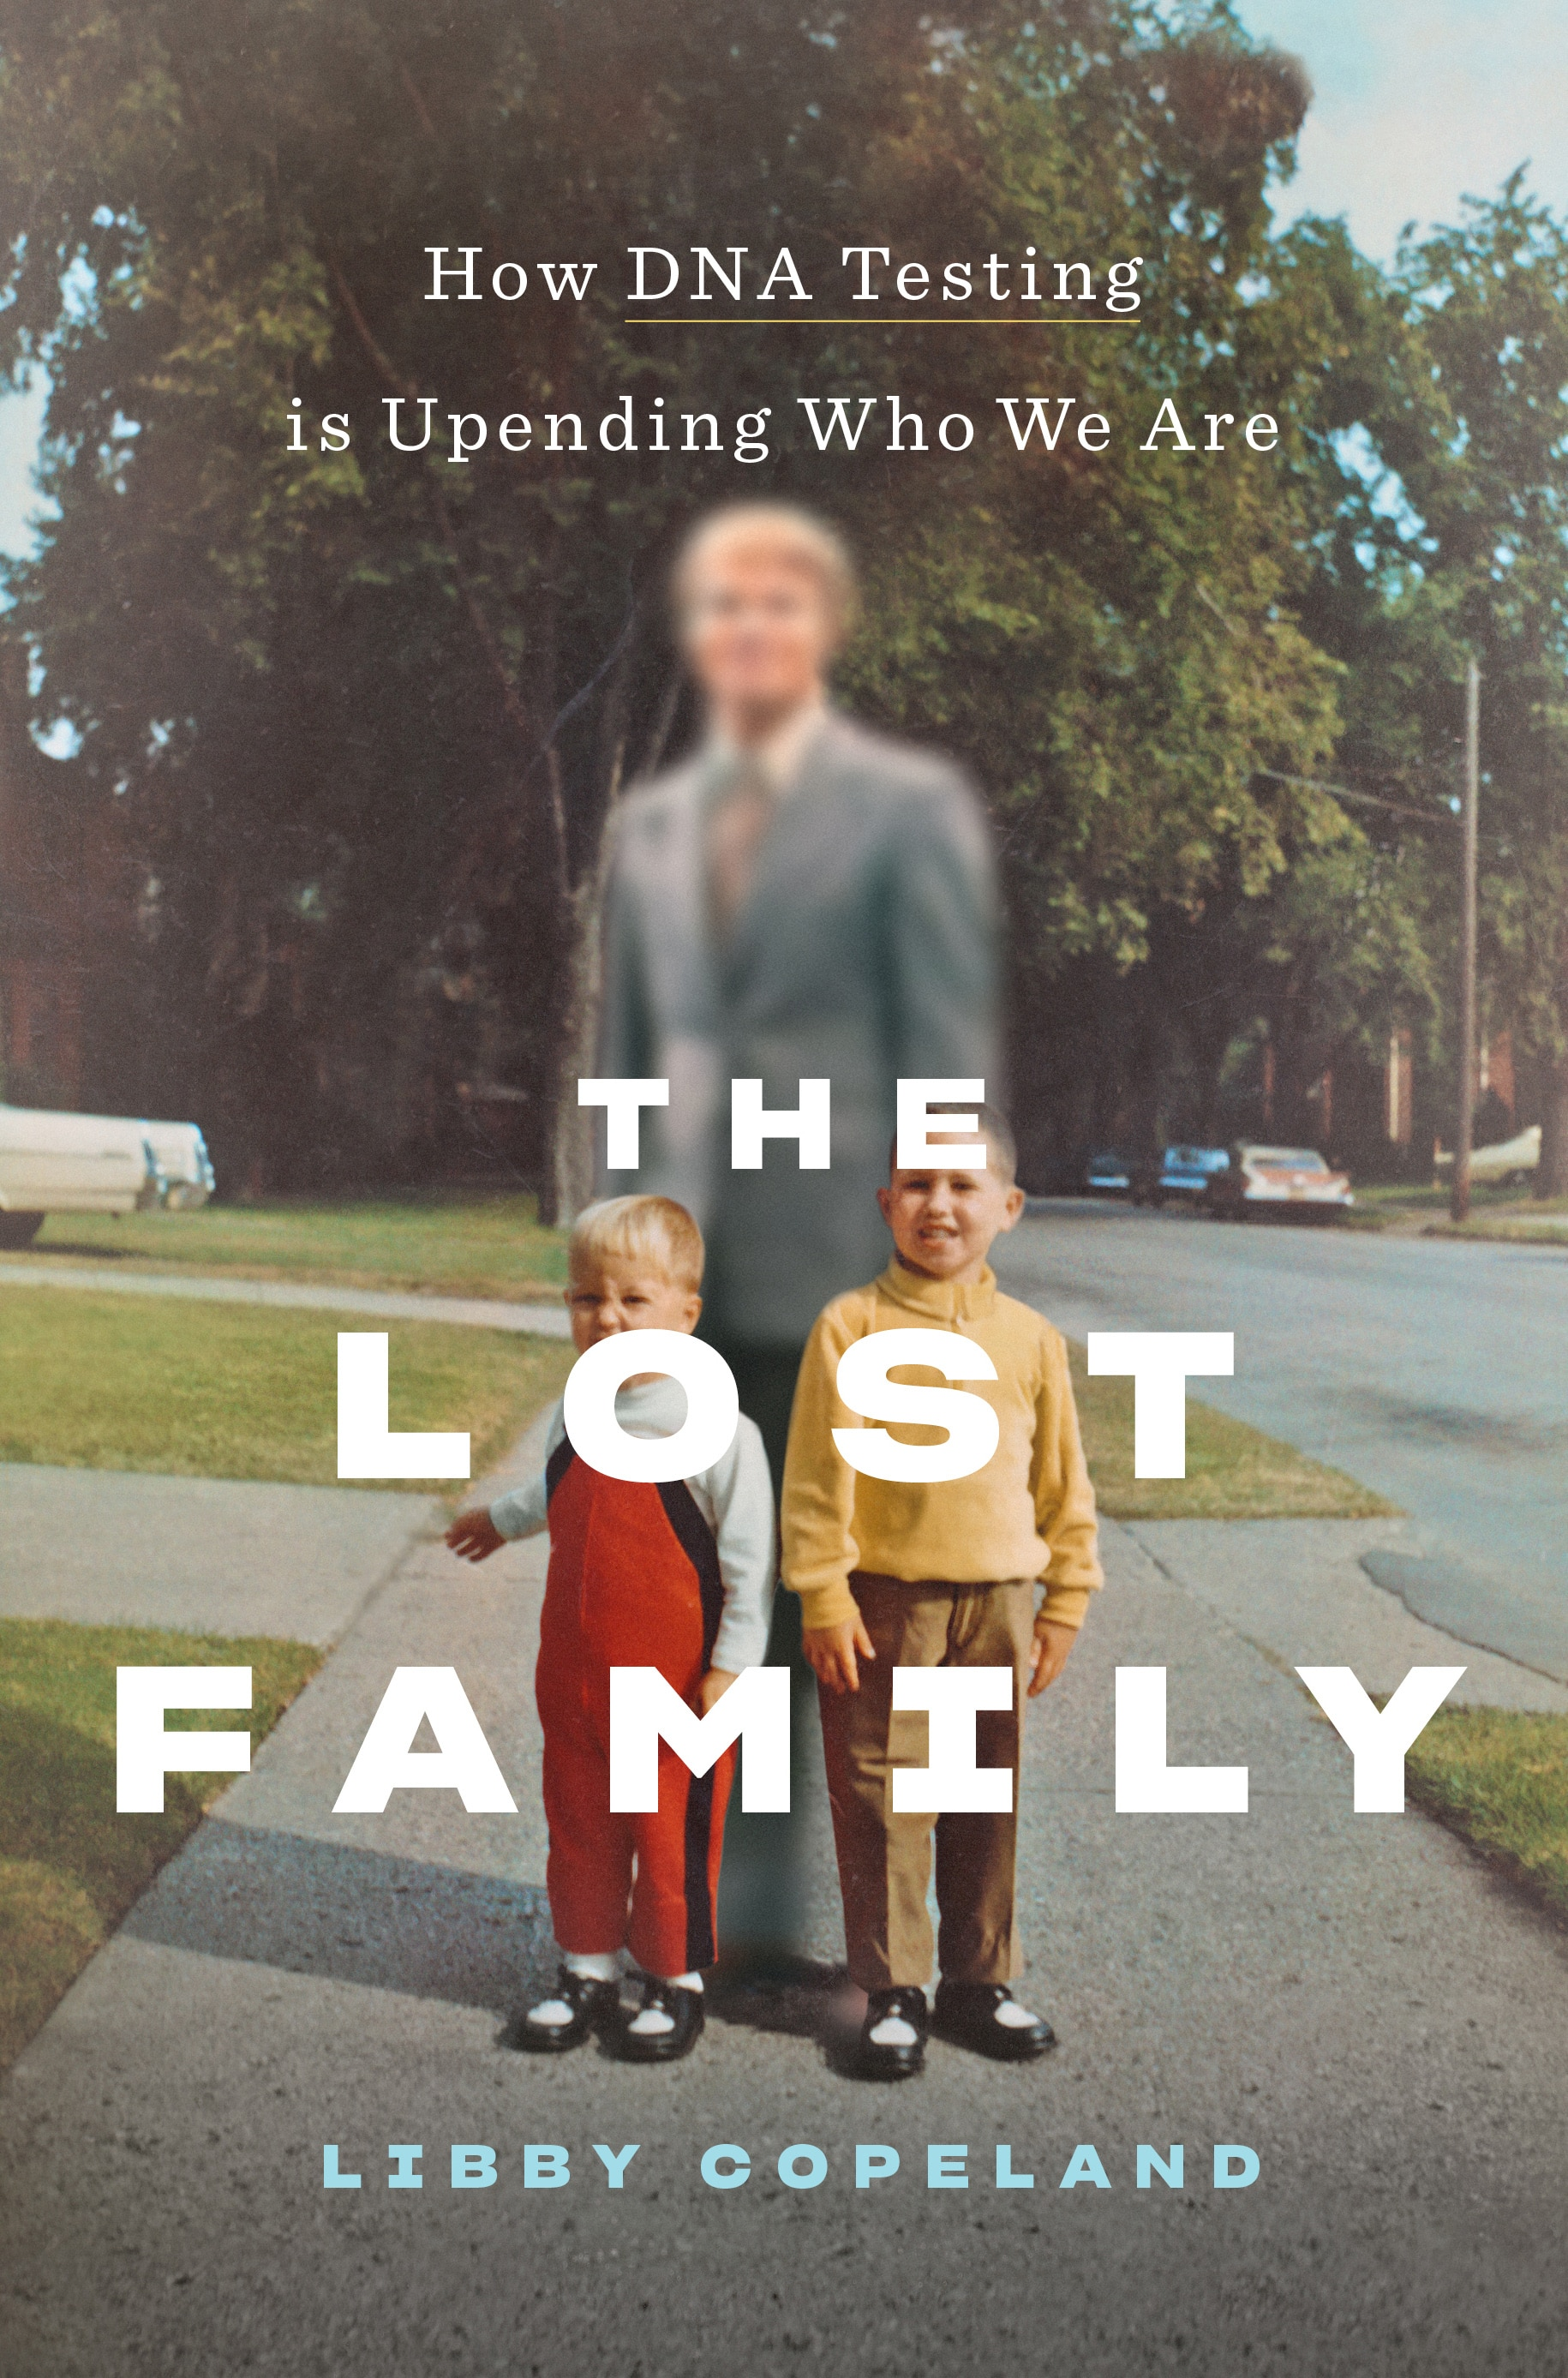 The Lost Family by Libby Copeland